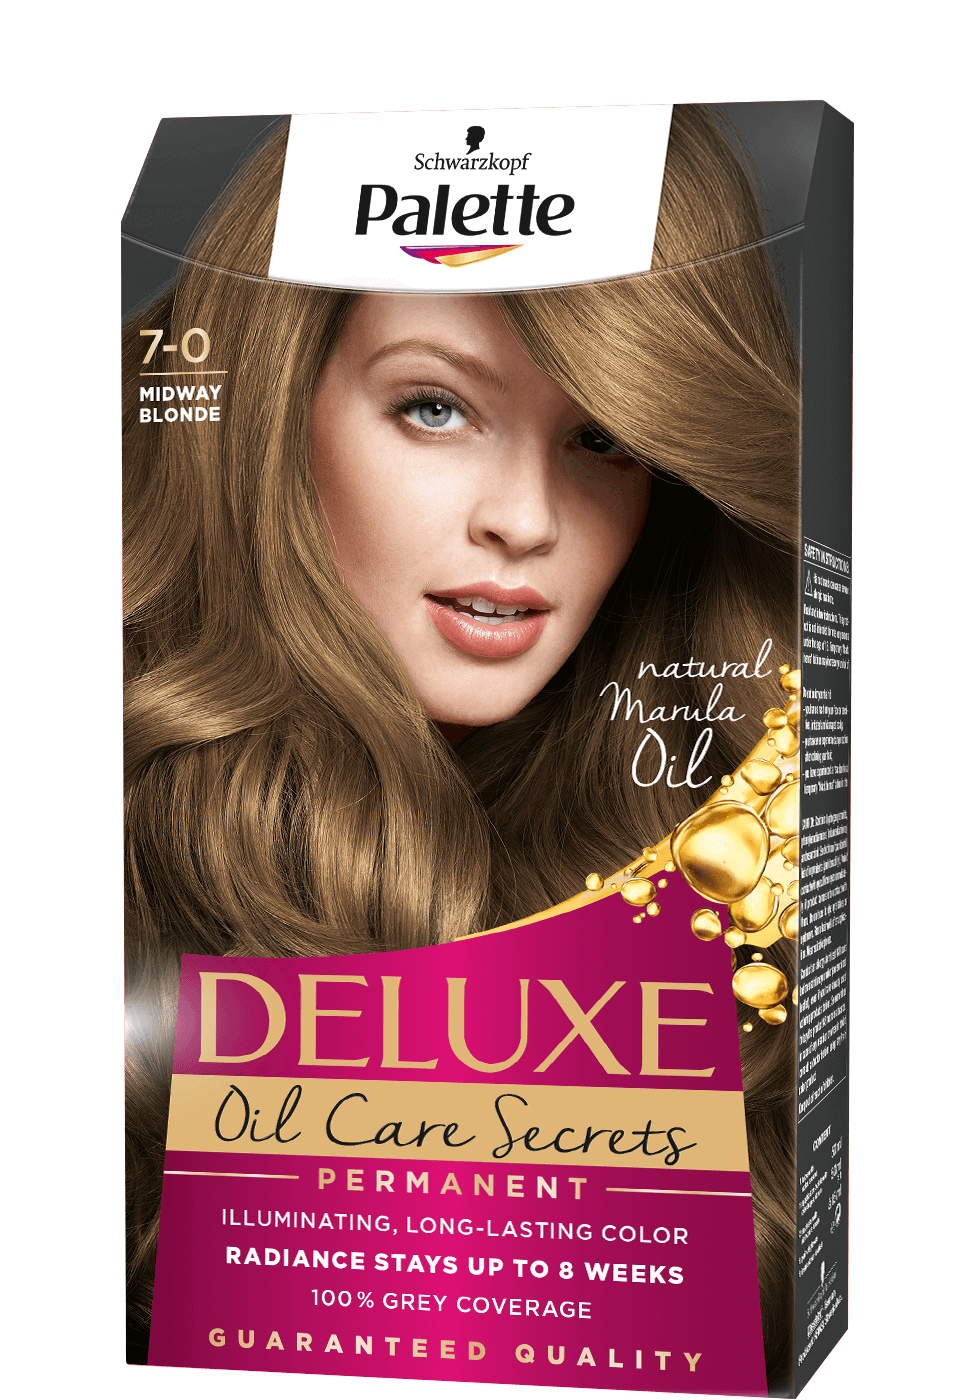 palette_com_oil_care_secrets_7_0_midway_blonde_970x1400